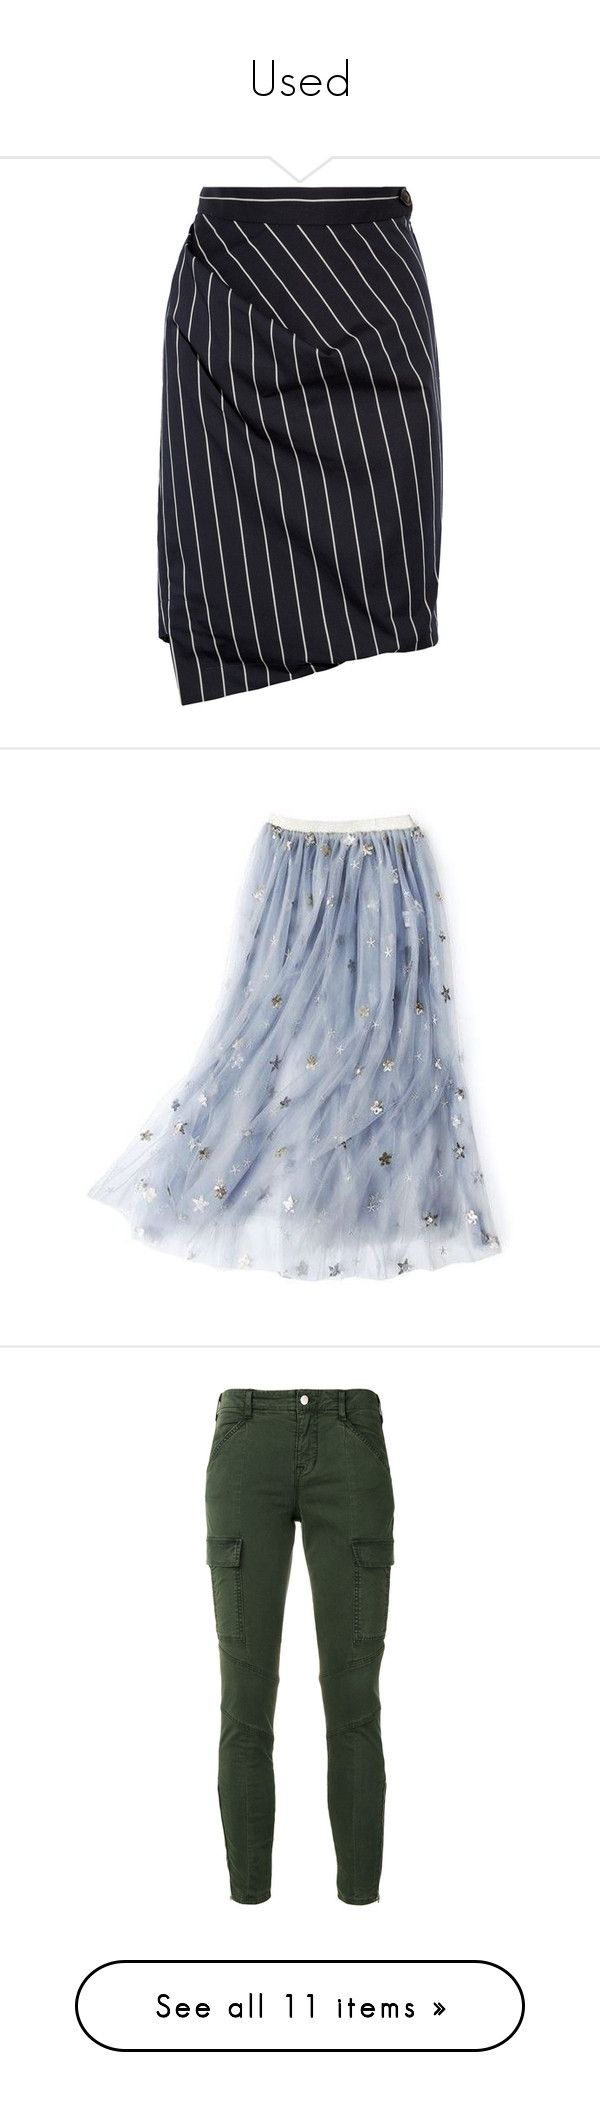 """""""Used"""" by martesaltroo on Polyvore featuring skirts, bottoms, vivienne westwood, saias, navy, navy knee length skirt, navy striped skirt, navy blue knee length skirt, blue striped skirt and navy blue pleated skirt"""